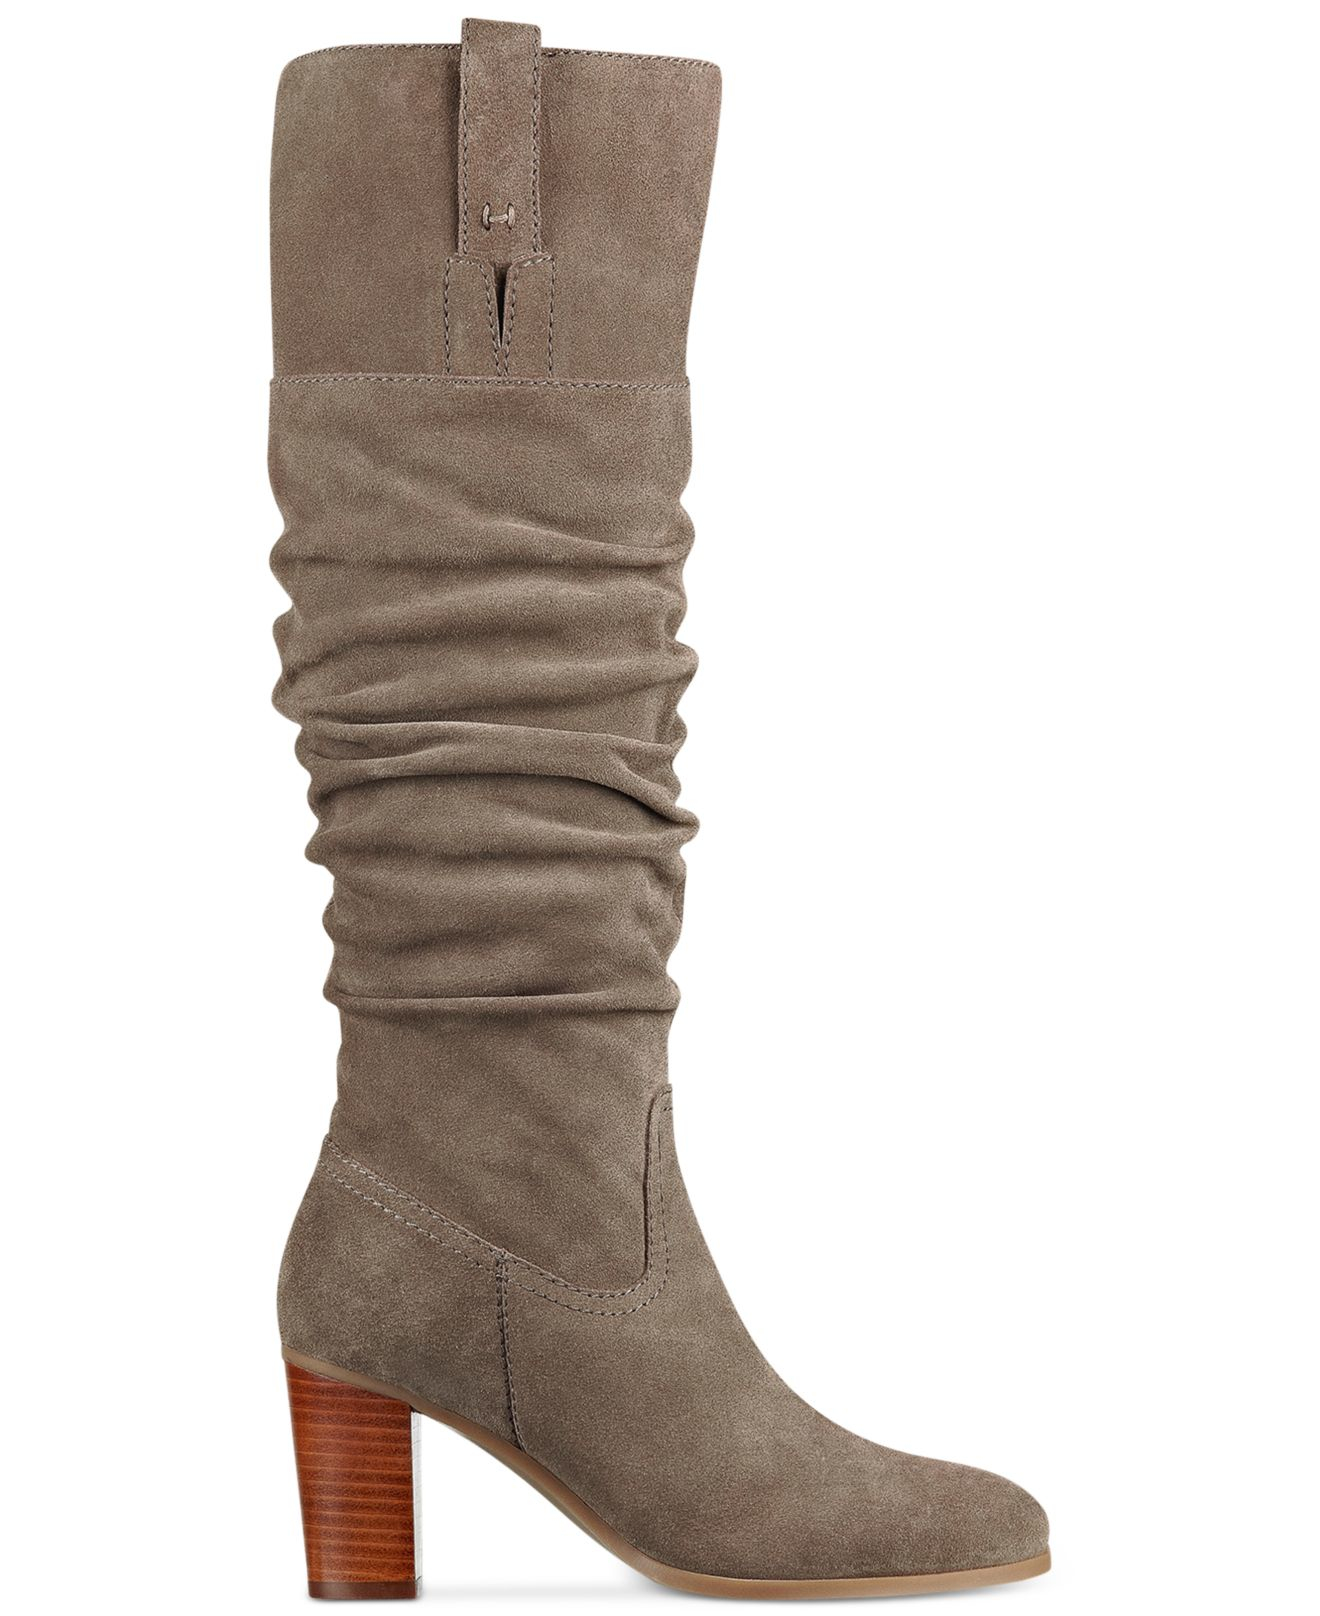 hilfiger trinety slouchy boots in brown canteen